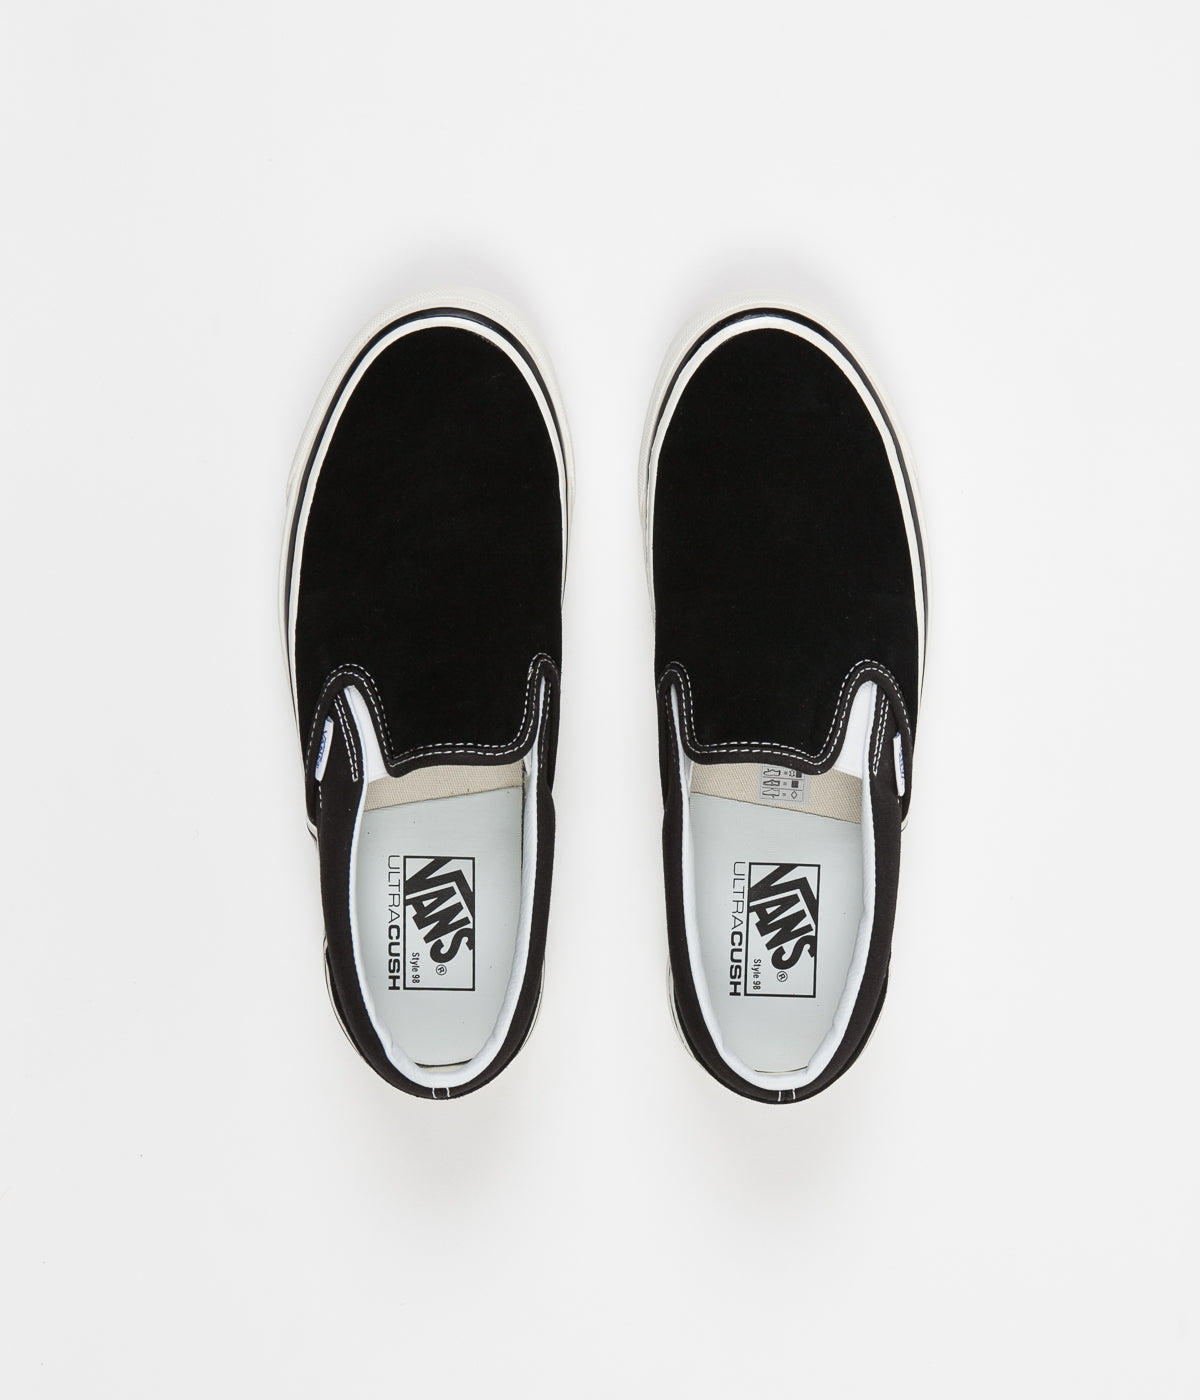 d01480b20c88 Vans Classic Slip On 98 DX Anaheim Factory Suede Shoes - OG Black ...